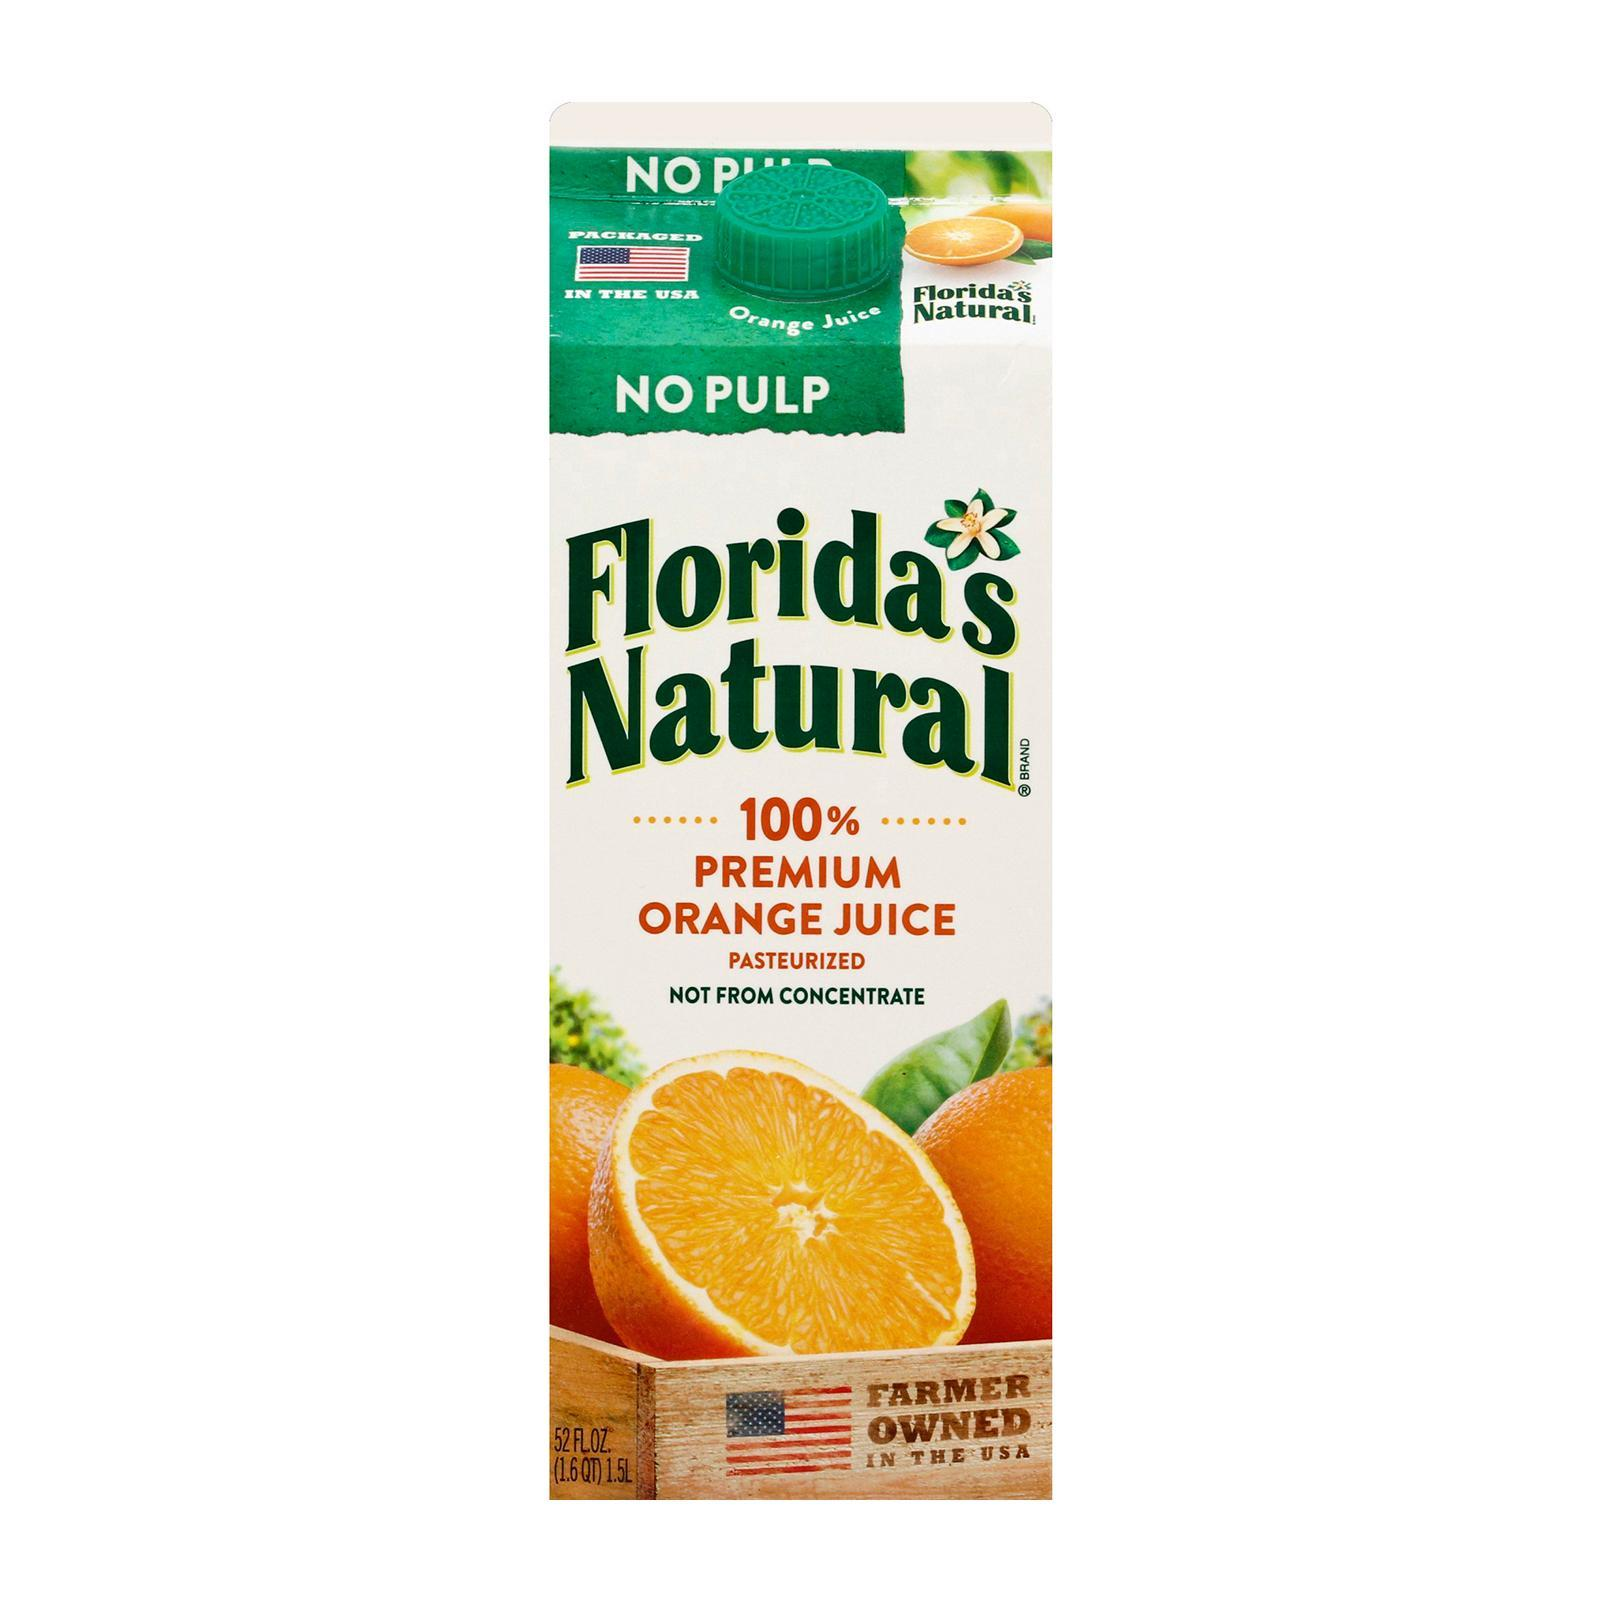 Florida's Natural NFC Premium (No Pulp) Orange Juice